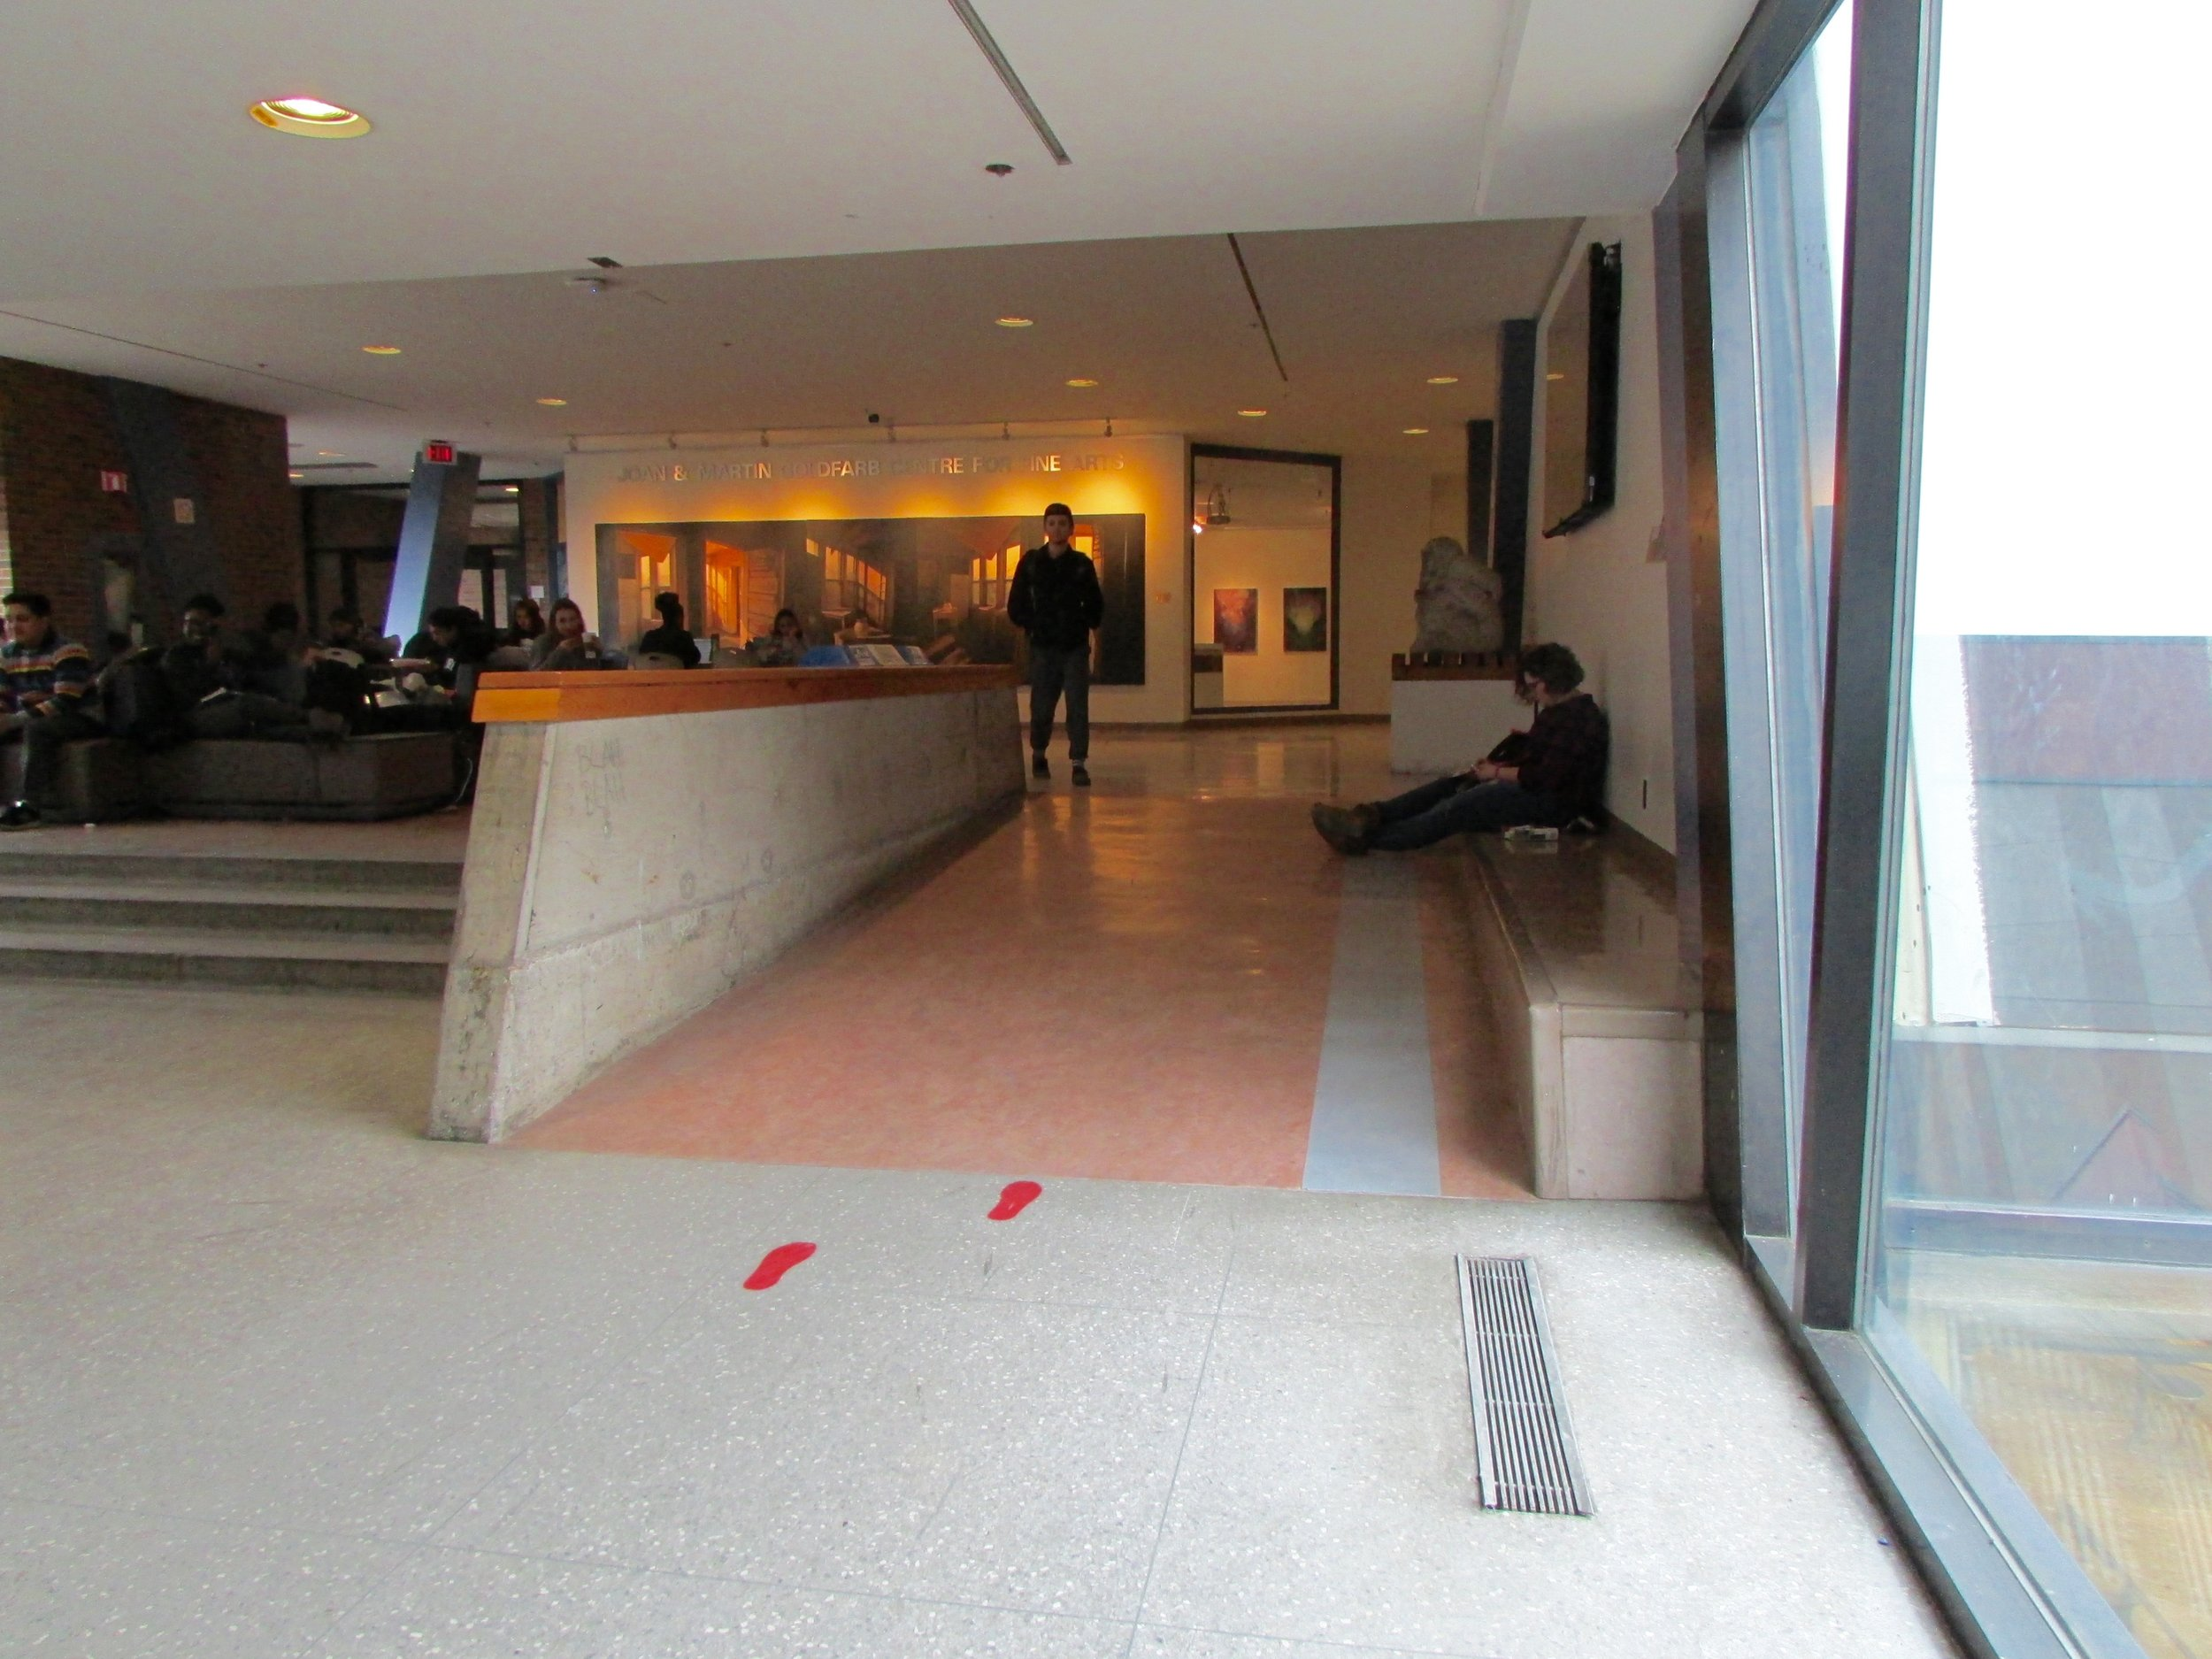 Ramp and route towards the Centre for Fine Arts